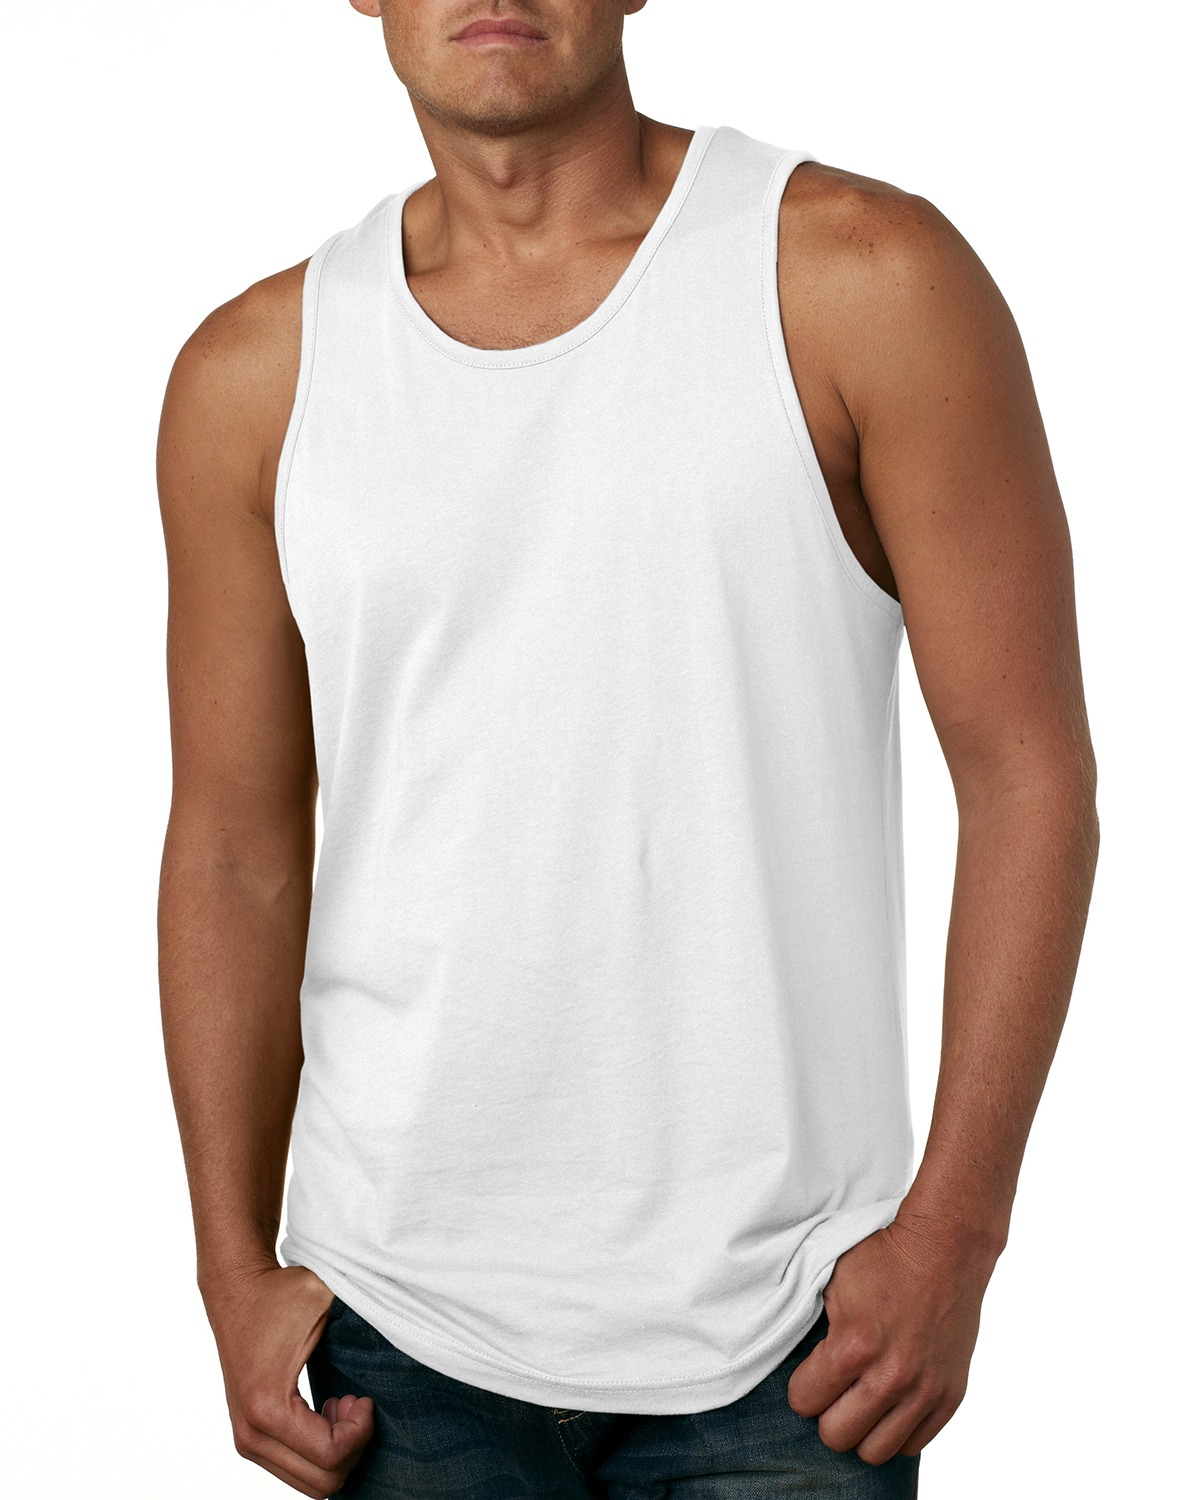 Branded Next Level Mens Cotton Tank Top - WHITE - M (Instant Saving 5% & more)